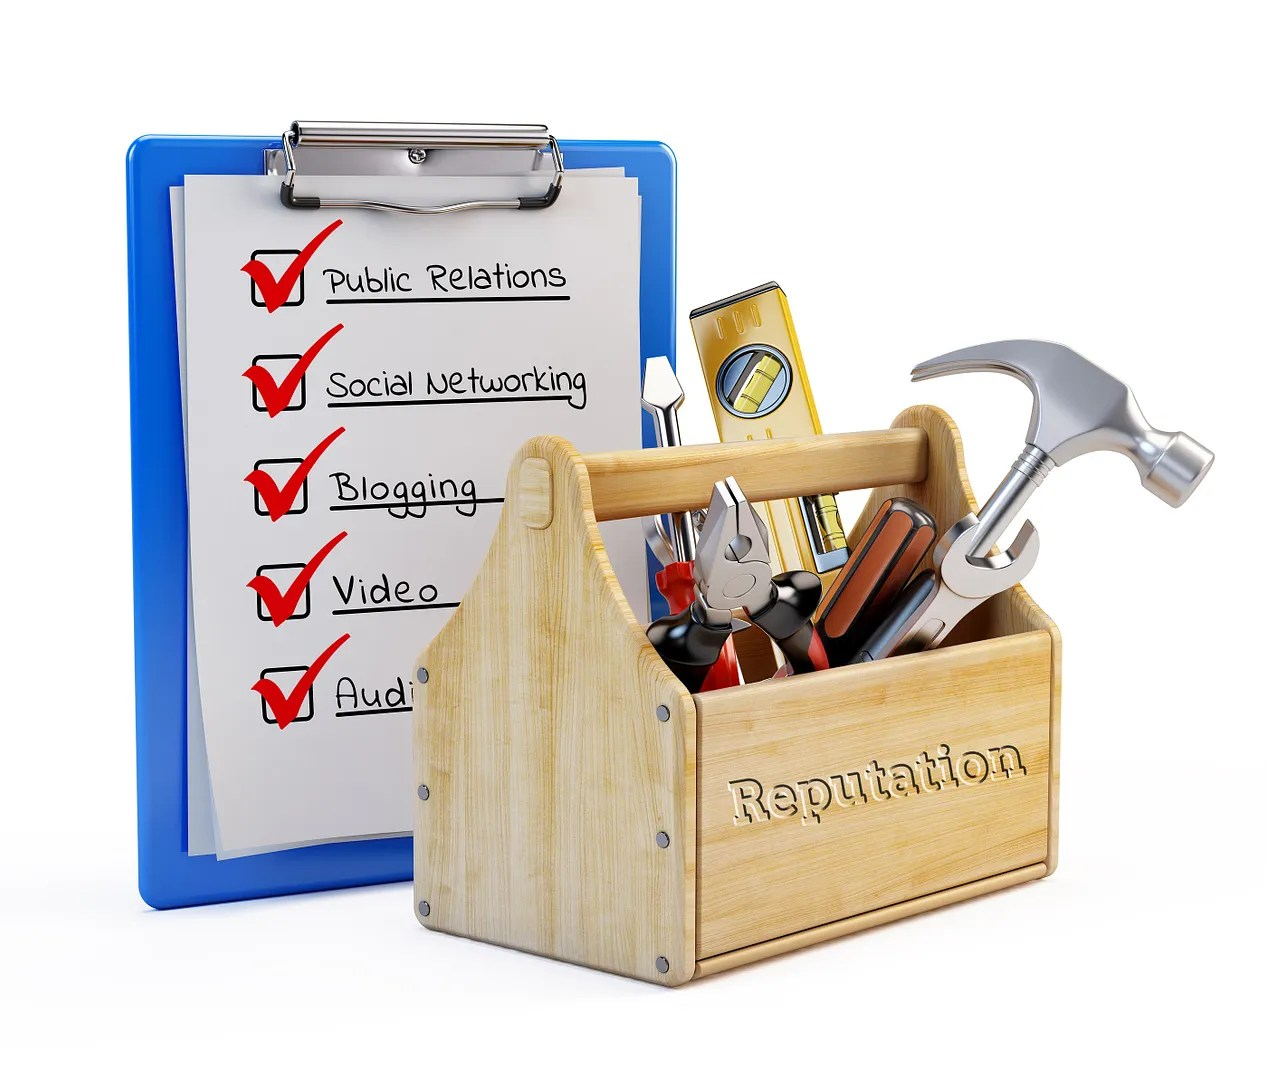 photo bigstock-Clipboard-and-toolbox-with-too-48224480_zps01425841.jpg